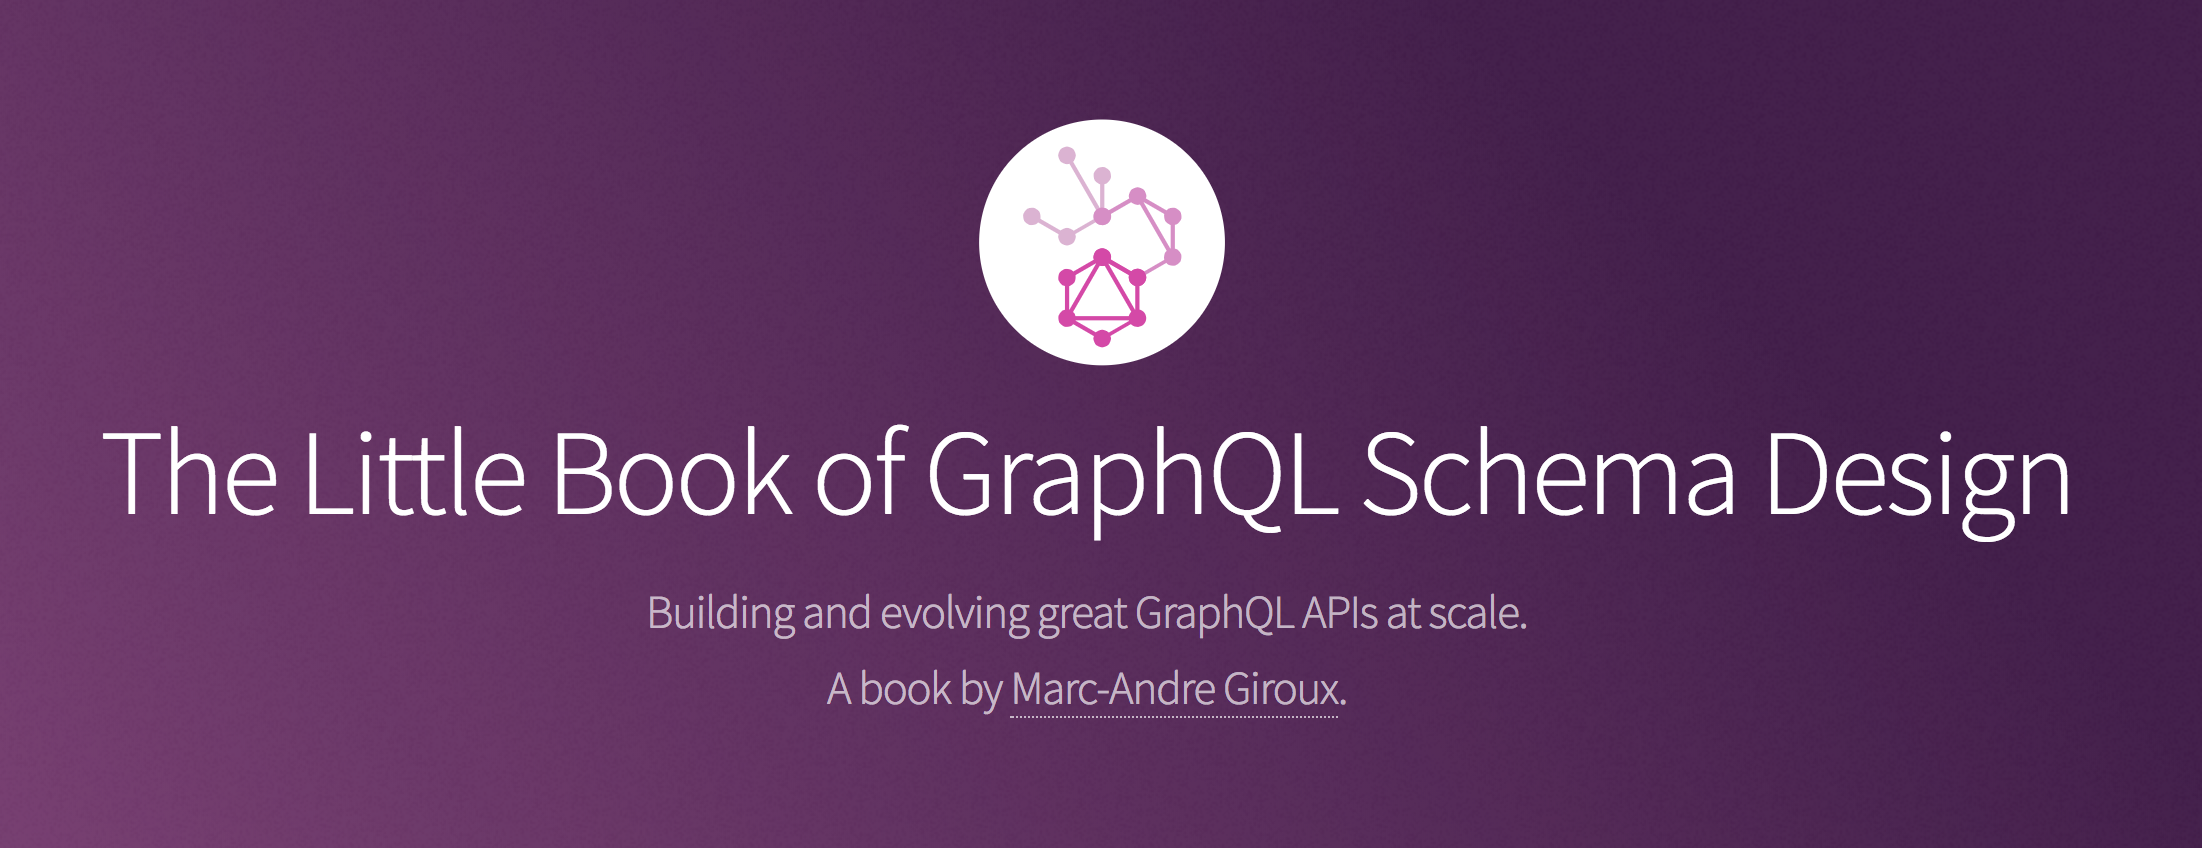 The Little Book of GraphQL Schema Design - Marc-André Giroux